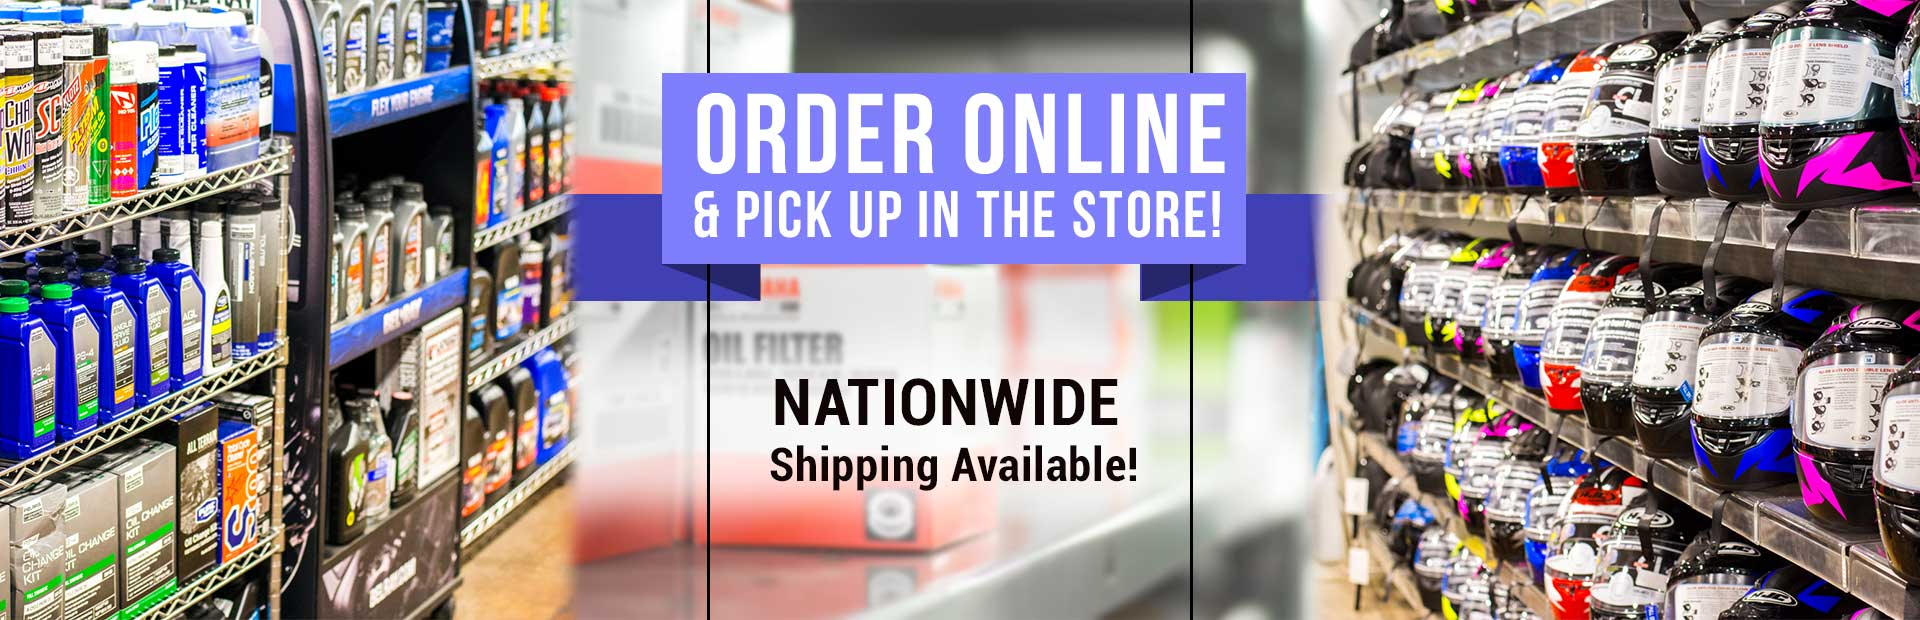 Order online and pick up in the store! Nationwide shipping is available!